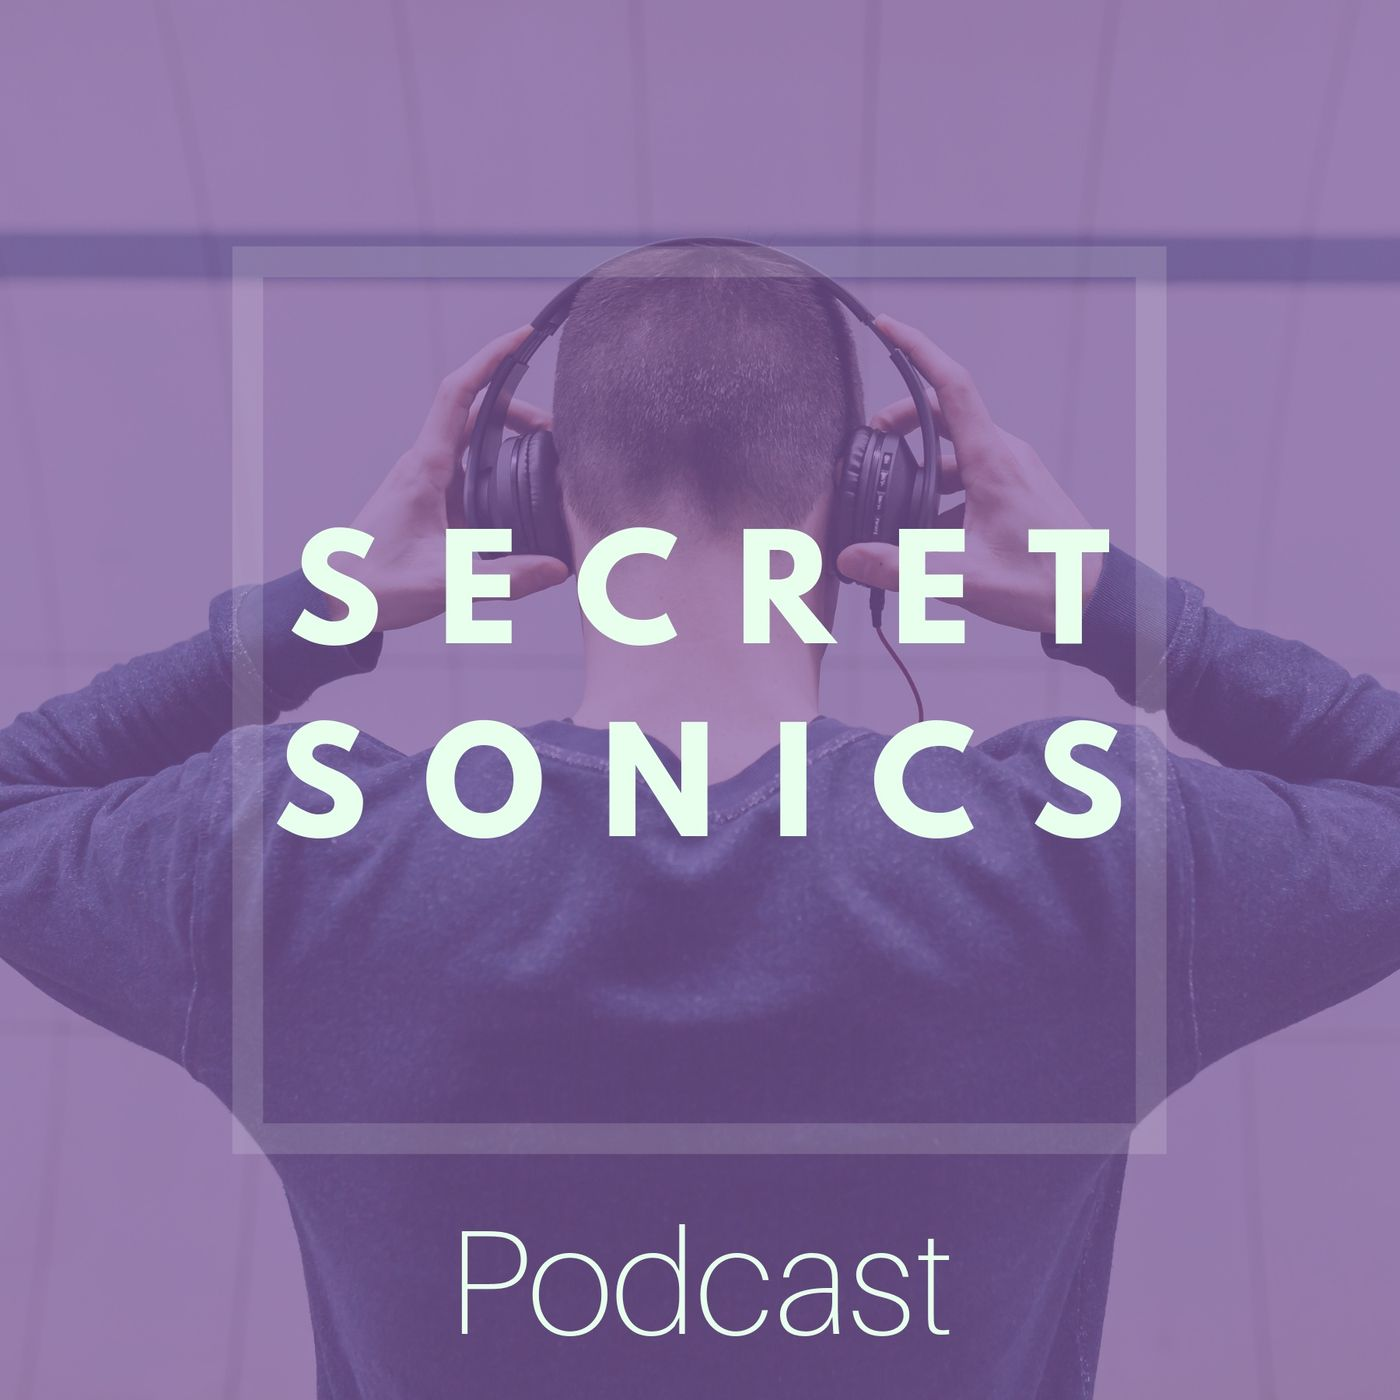 Secret Sonics 008 - Howard Feibusch